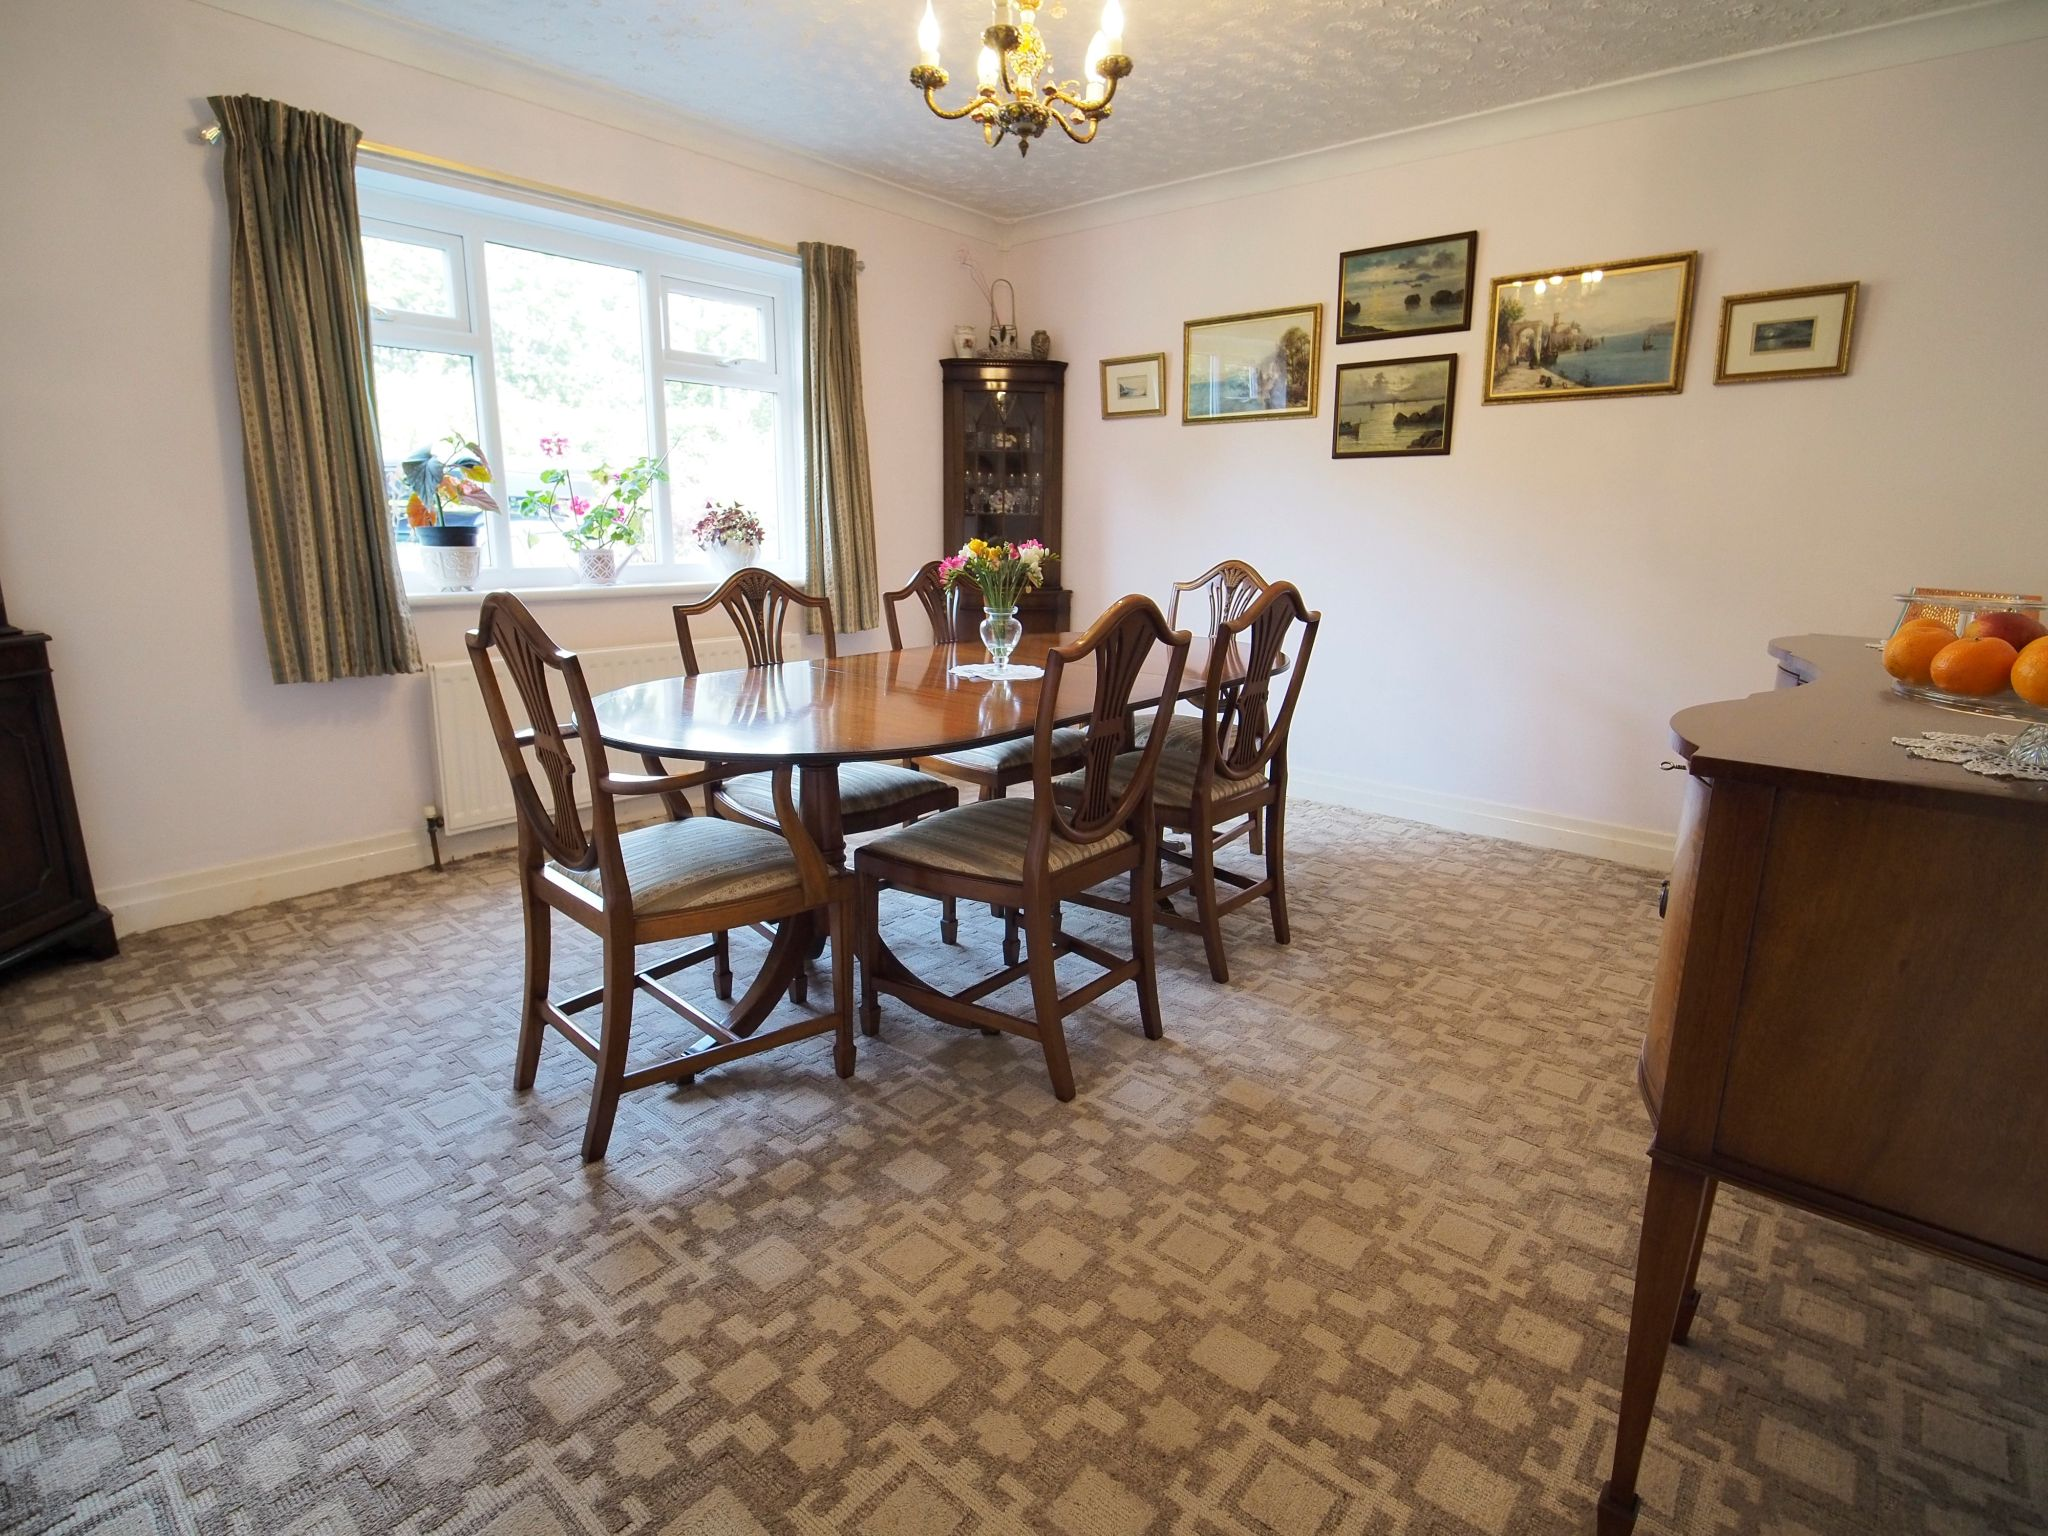 4 bedroom detached house For Sale in Willington - Separate Dining Room.